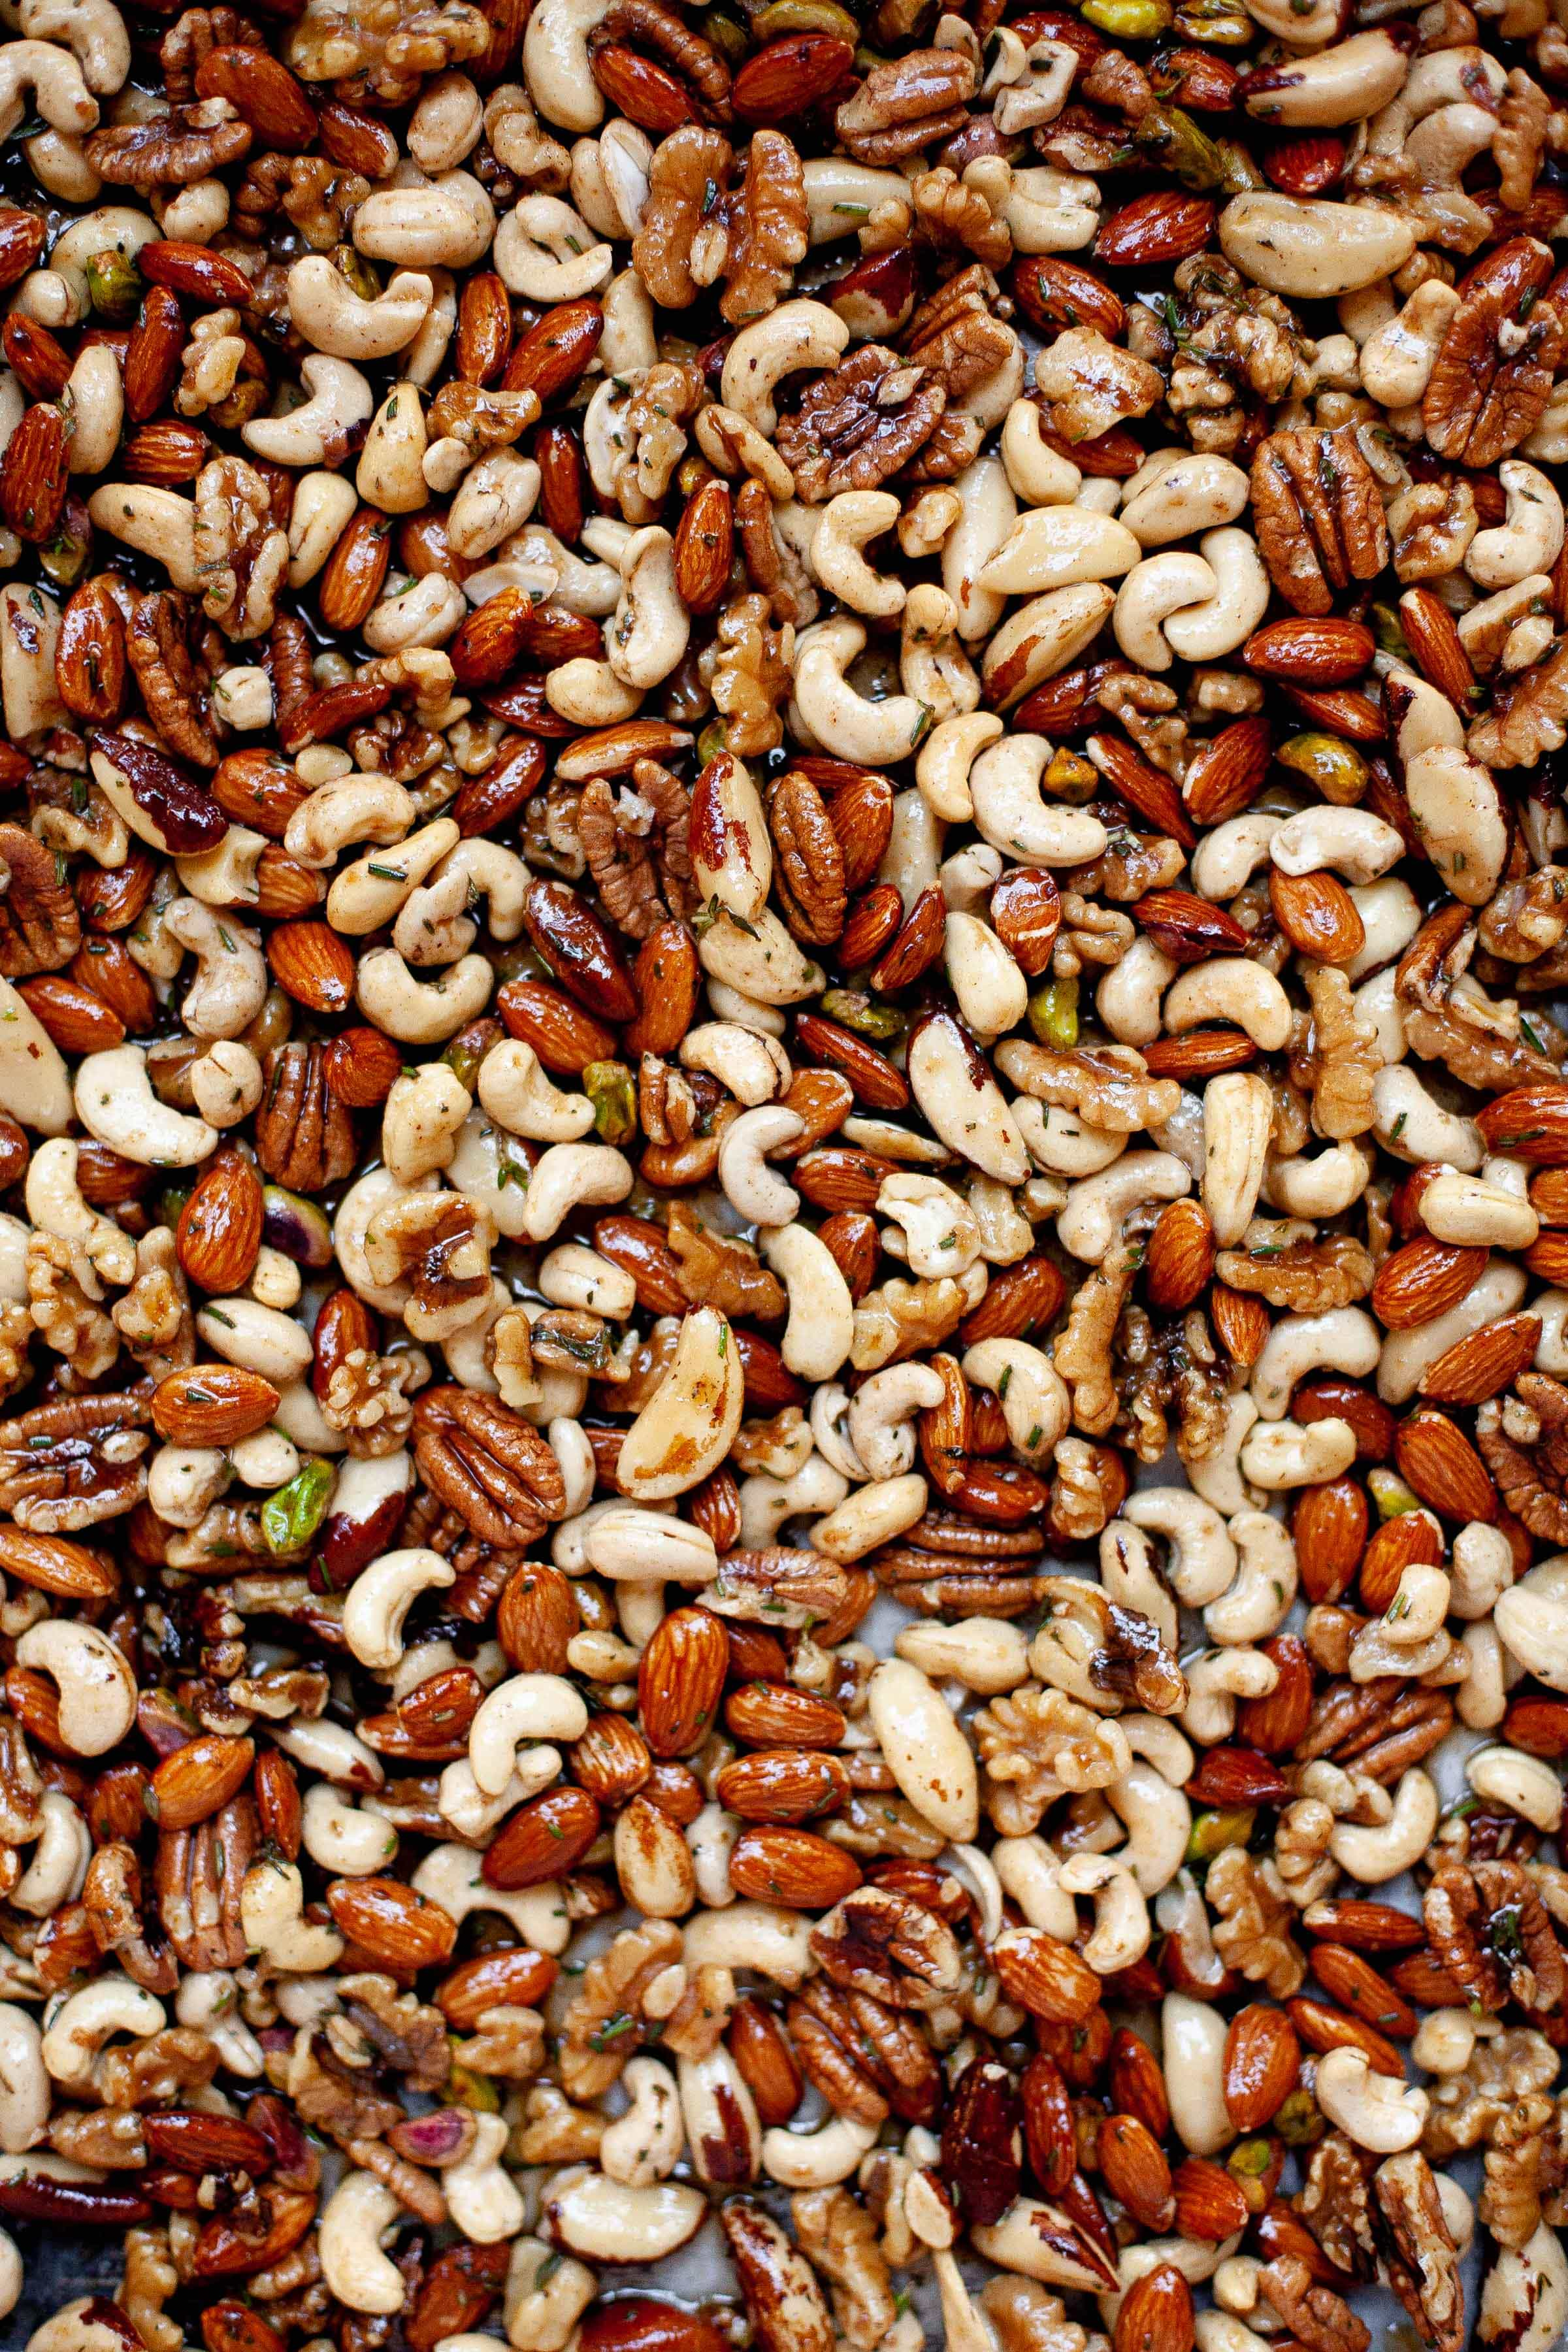 Mixed nuts sprinkled with seasoning and ready for roasting